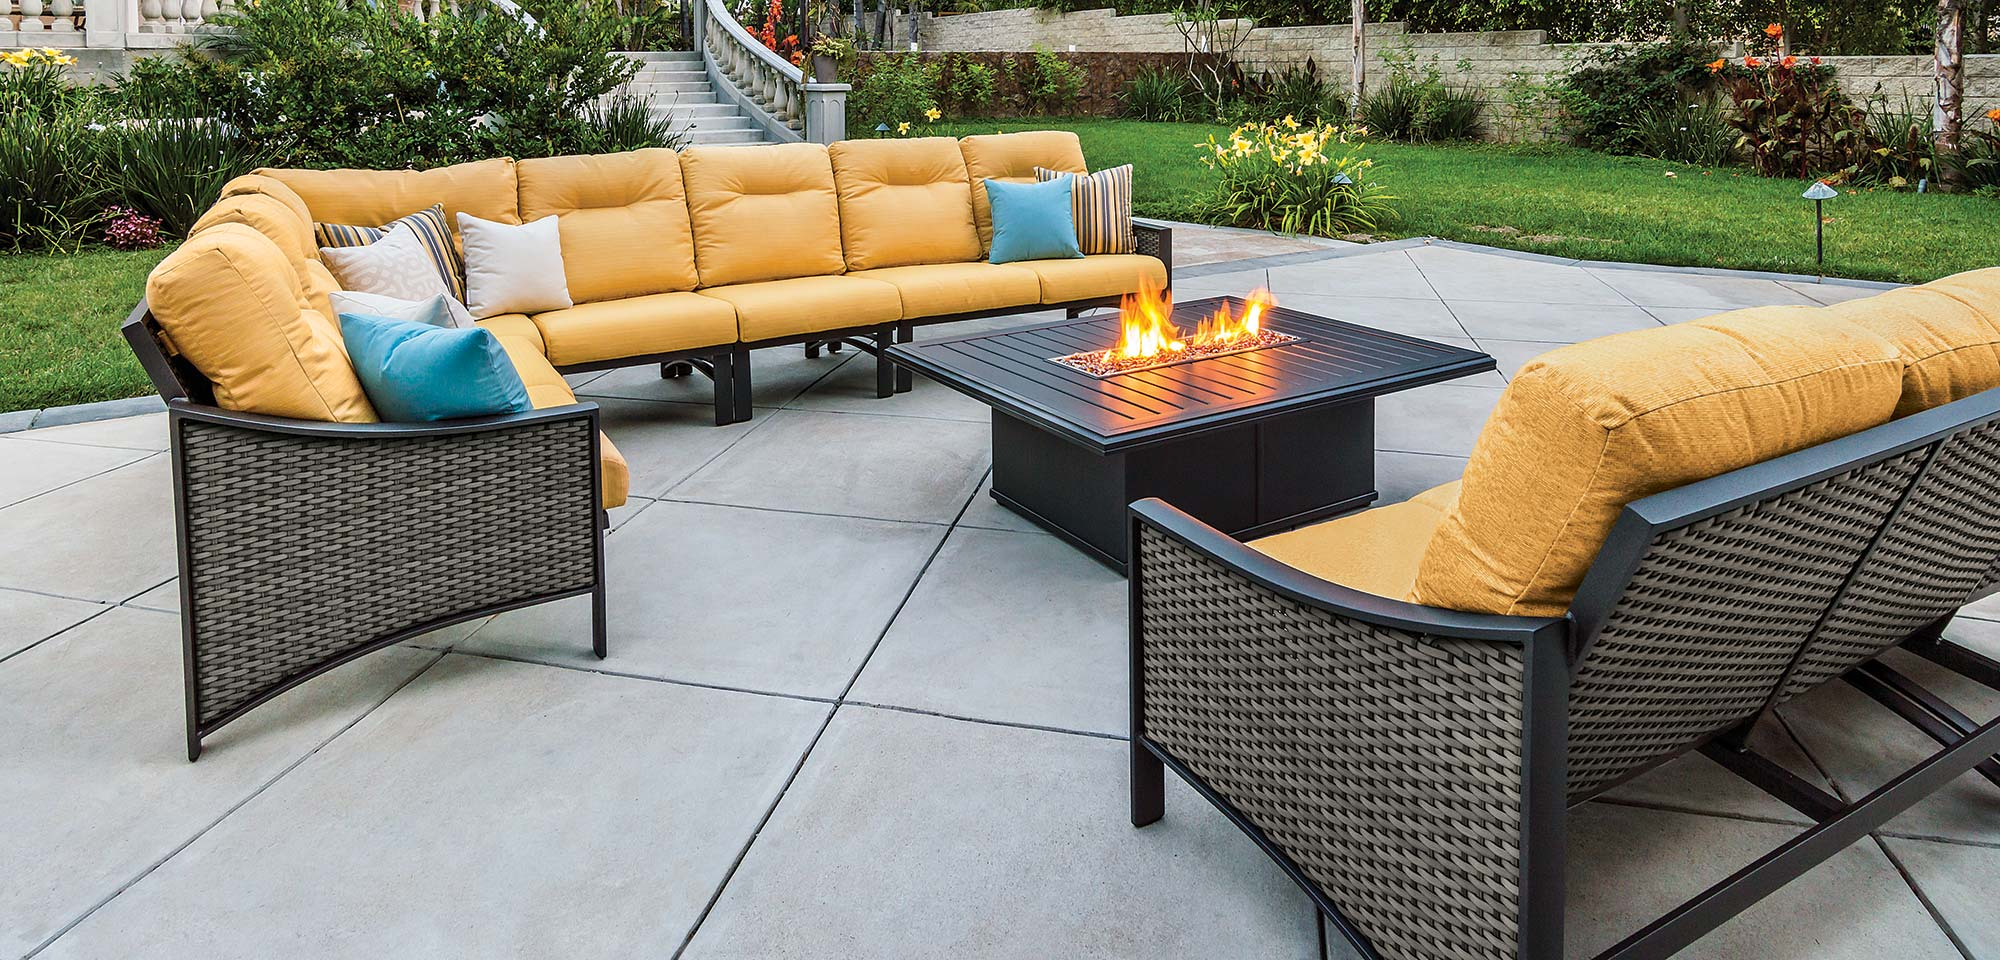 Patio furniture outdoor patio furniture sets for Outdoor patio furniture sets